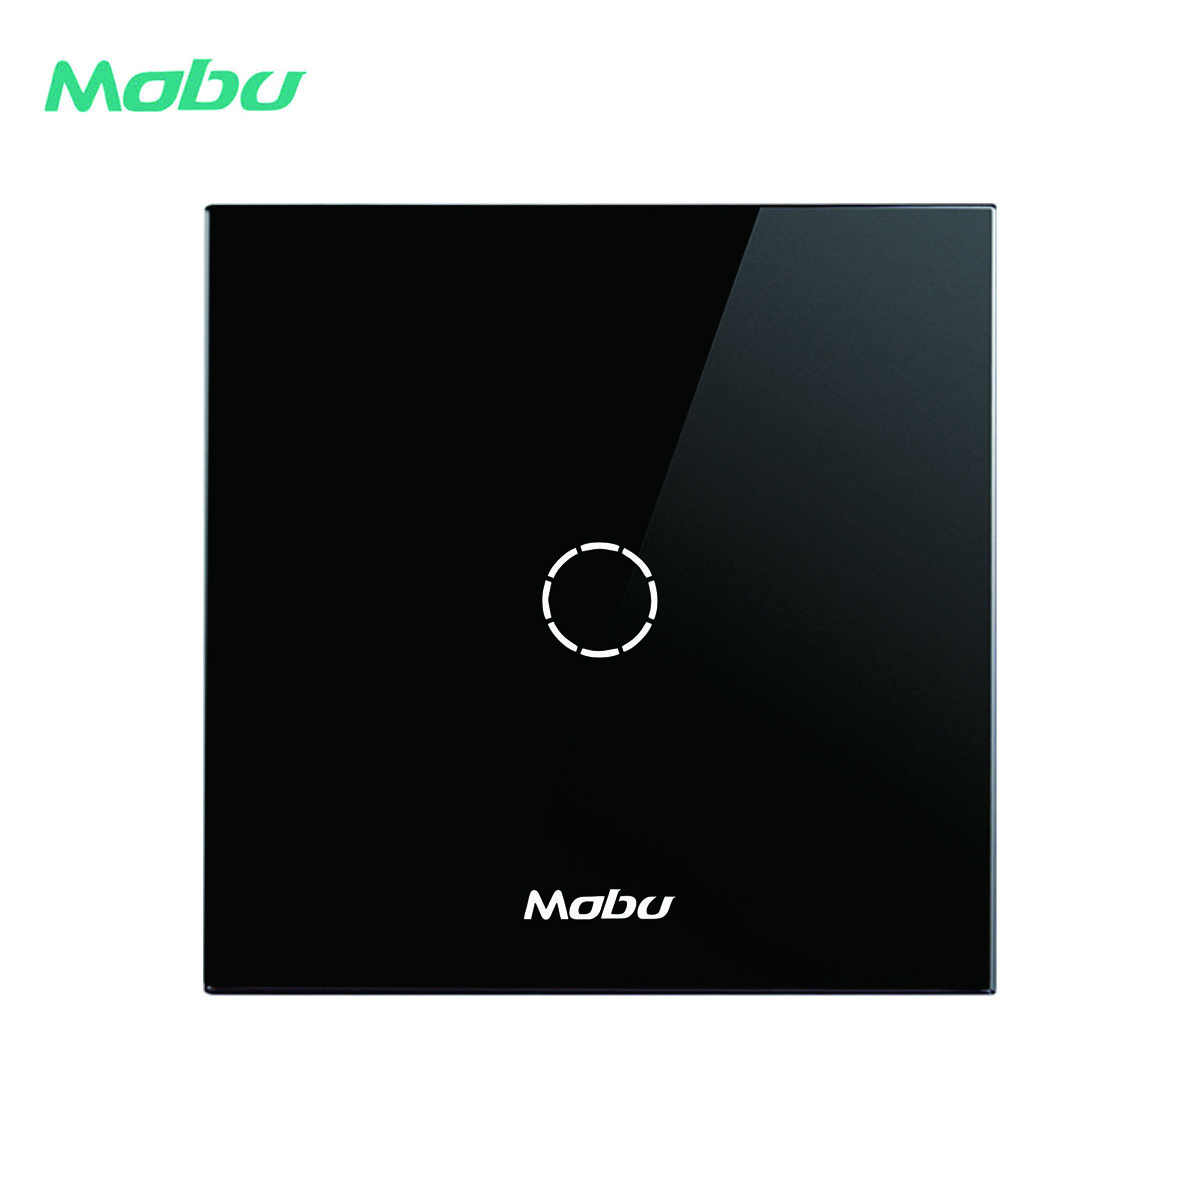 Mobu 123 Gang 1 Arah, Crystal Glass Panel Touch Switch, Dinding Layar Sentuh Tombol